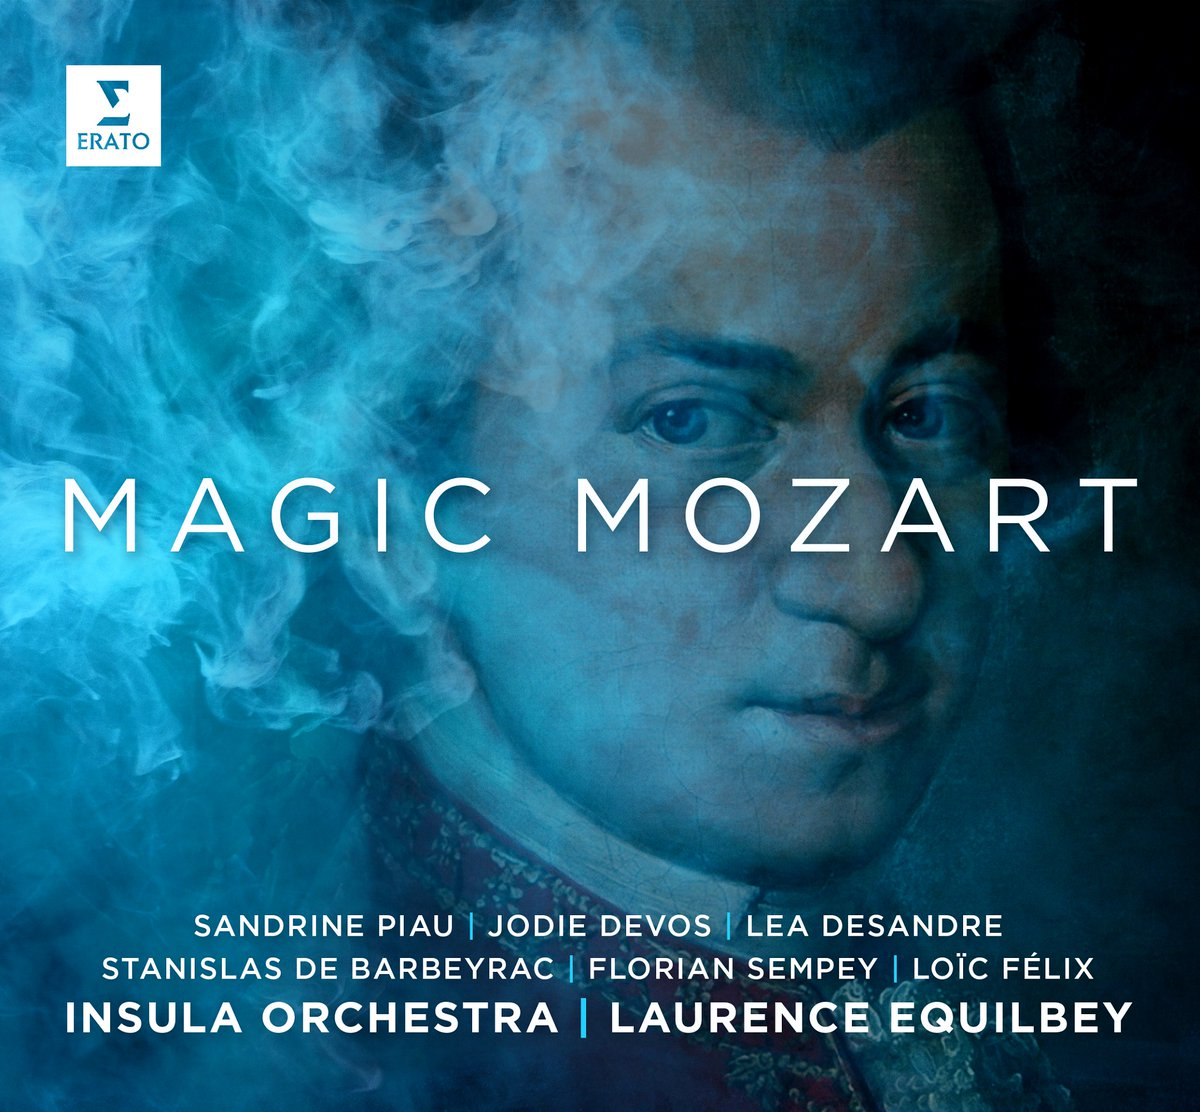 ✨ OUT NOW! Magic Mozart by Laurence @Equilbey and @InsulaOrchestra brings together numbers from Mozart operas in a program conceived around magic: https://t.co/dA53gvDpS1  Feat. Sandrine Piau, @JodieDevos, @LeaDesandre, Stanislas de Barbeyrac, Loïc Félix, and @FlorianSempey. https://t.co/pqdvDGeIDj